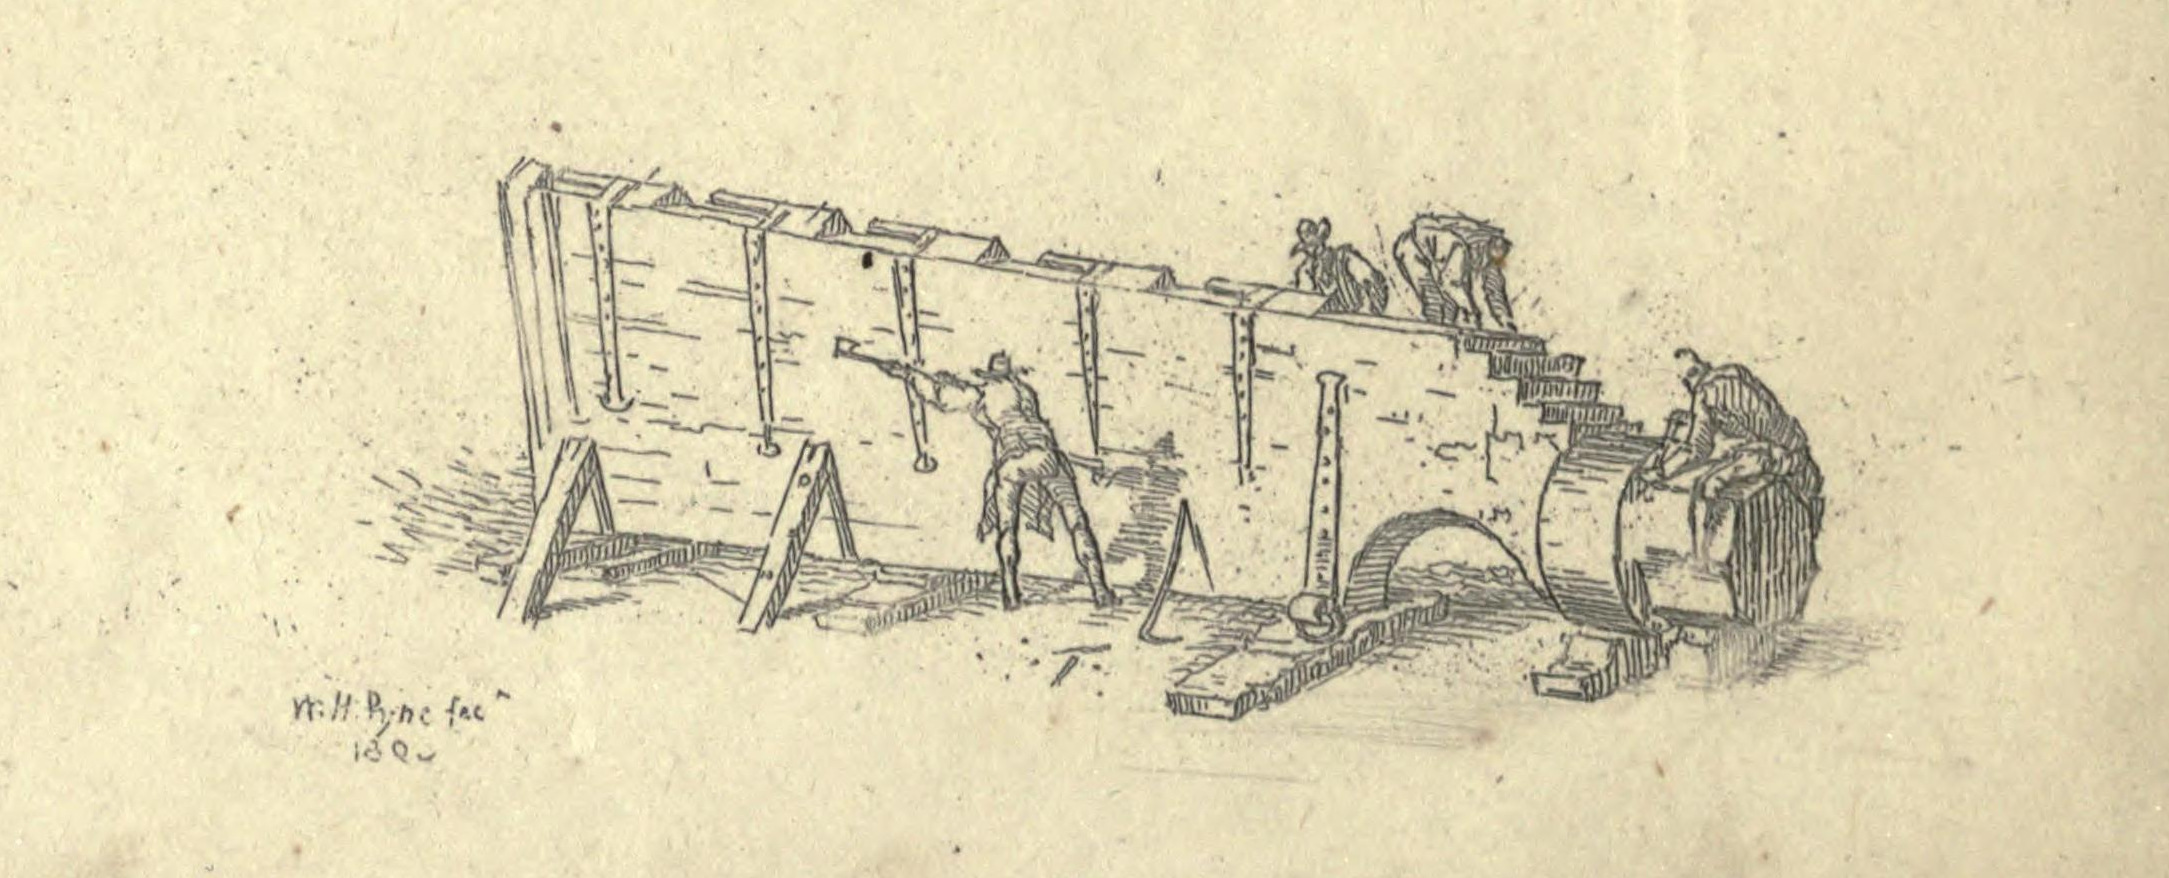 Making A Rudder for a Ship of War. W.H. Pyne 1803